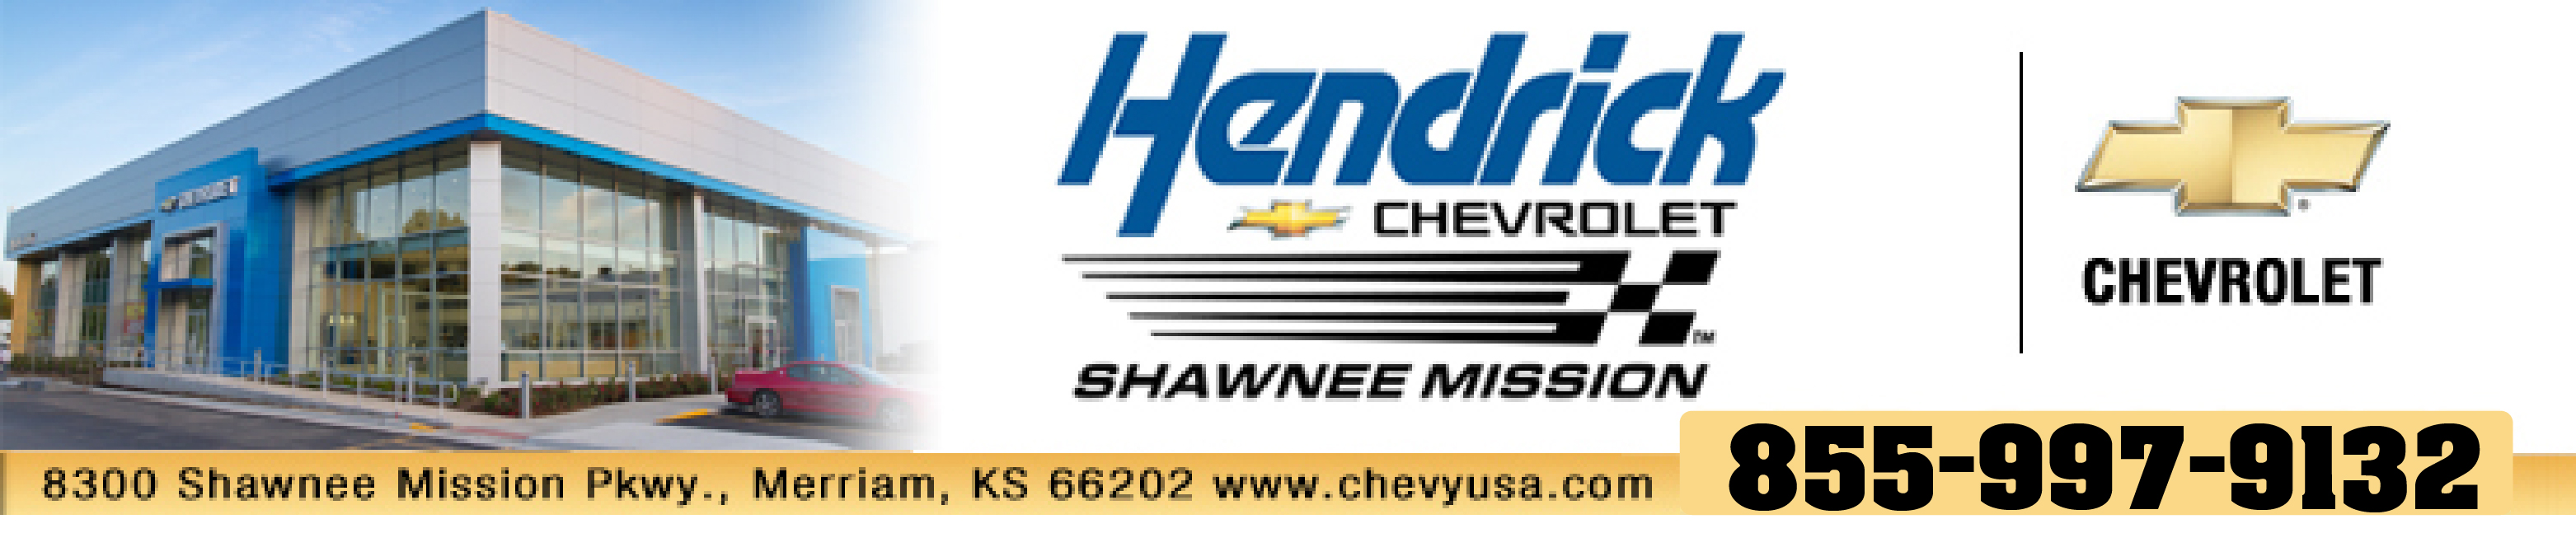 Click the logo to visit Hendrick Chevrolet's very comprehensive web site